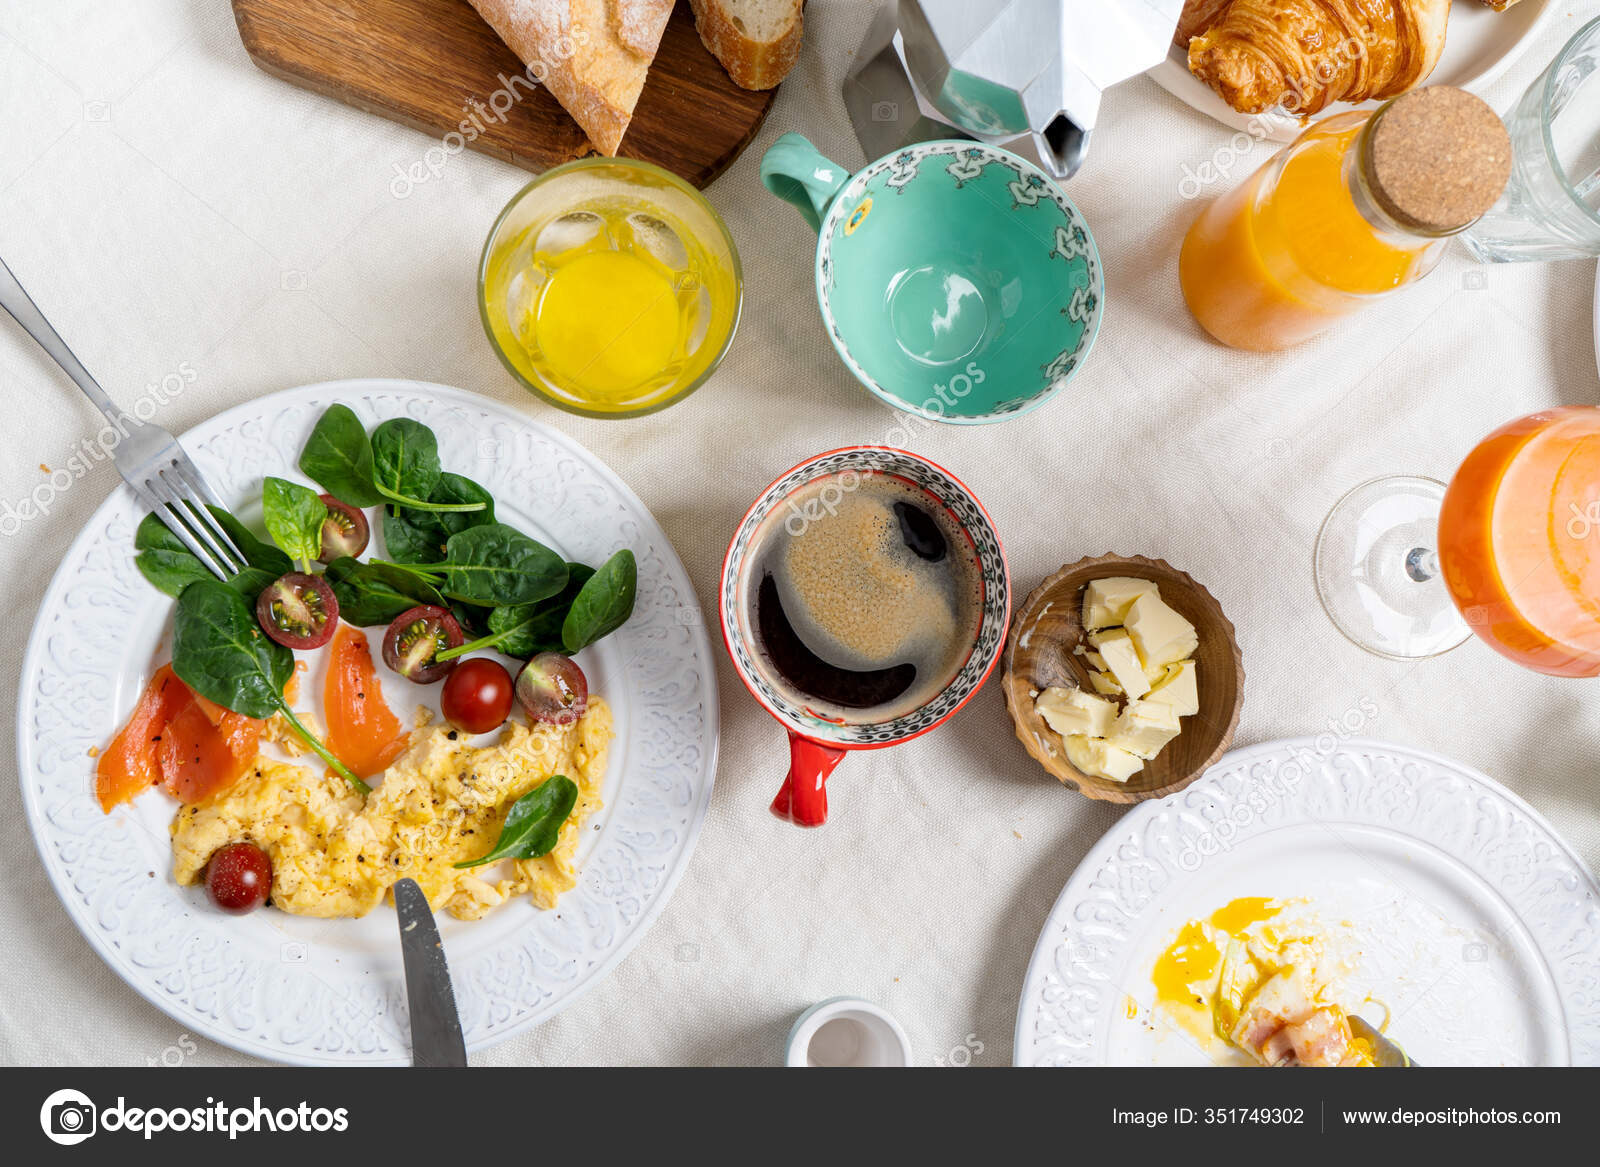 Healthy Breakfast Different Cooked Eggs Coffee Flat Lay Plates Food Stock Photo C Pinkasevich 351749302